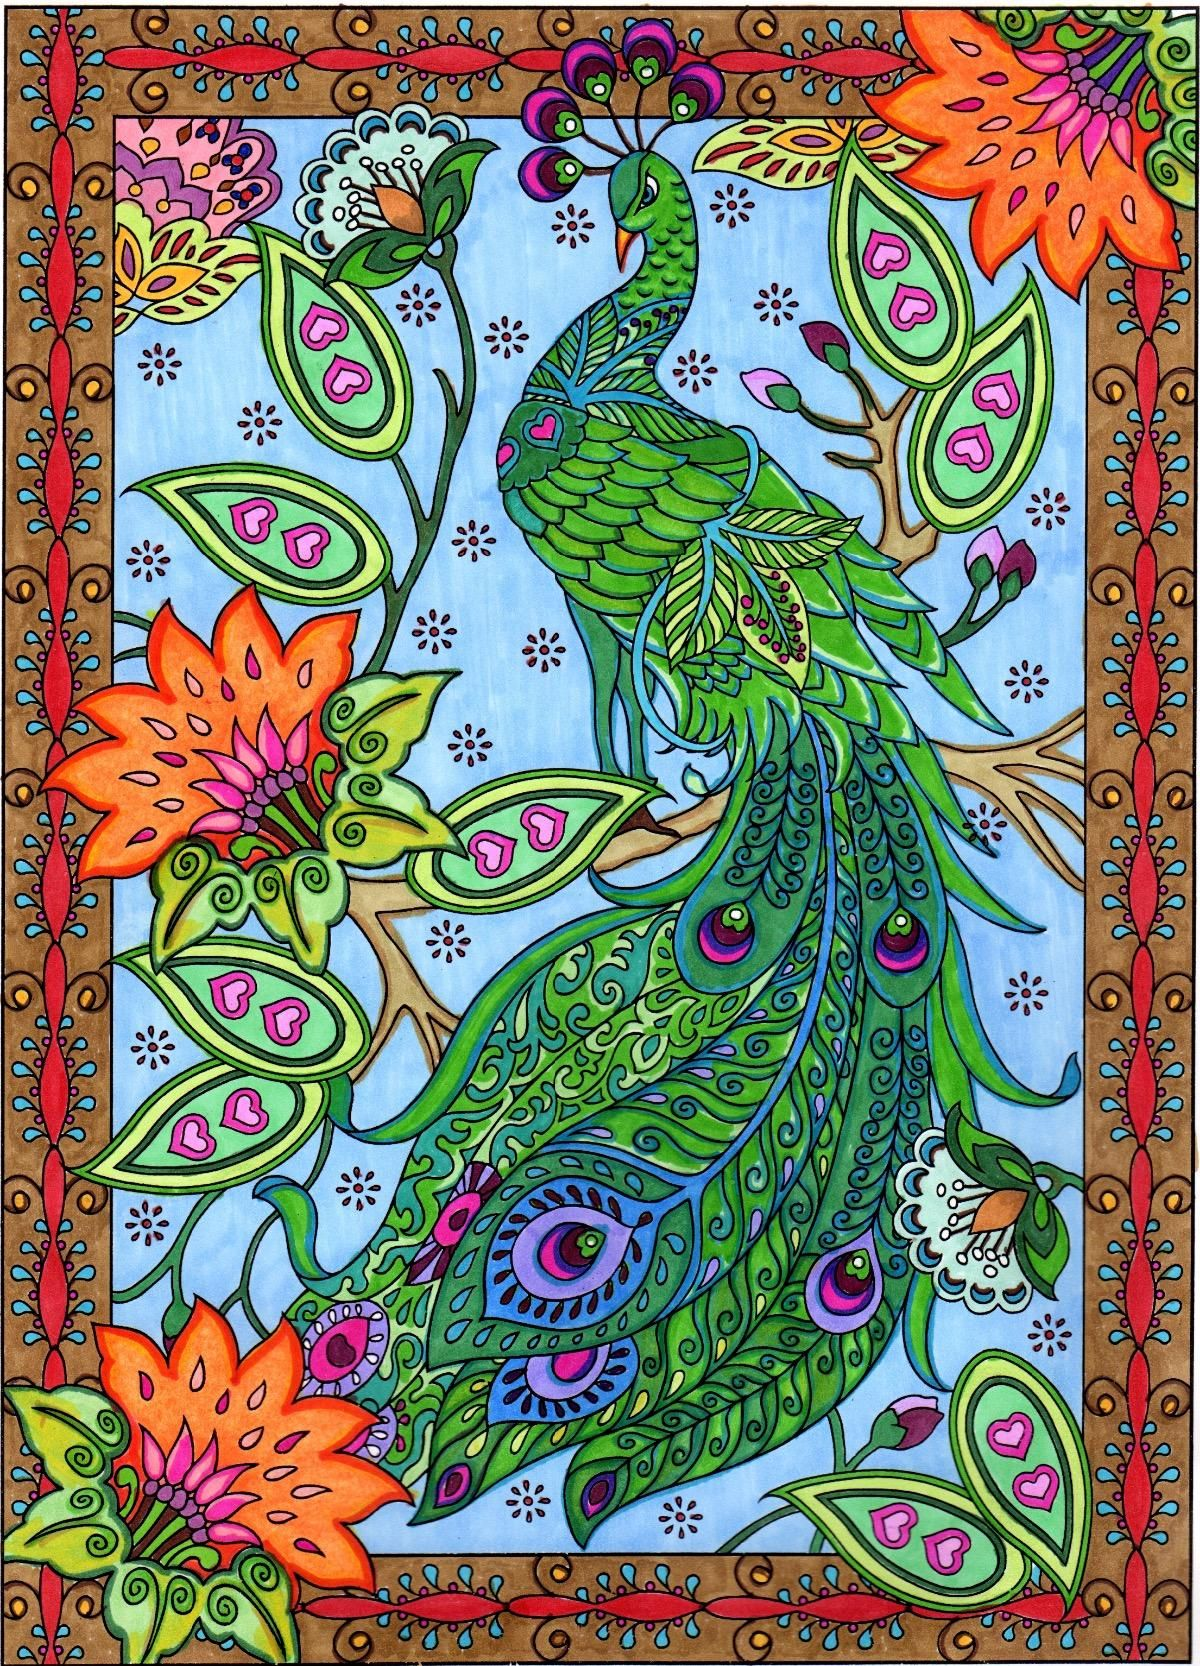 Amazon BellaBella By The Sea S Review Of Creative Coloring Book PagesPeacock ColorsMehndi DesignsArt